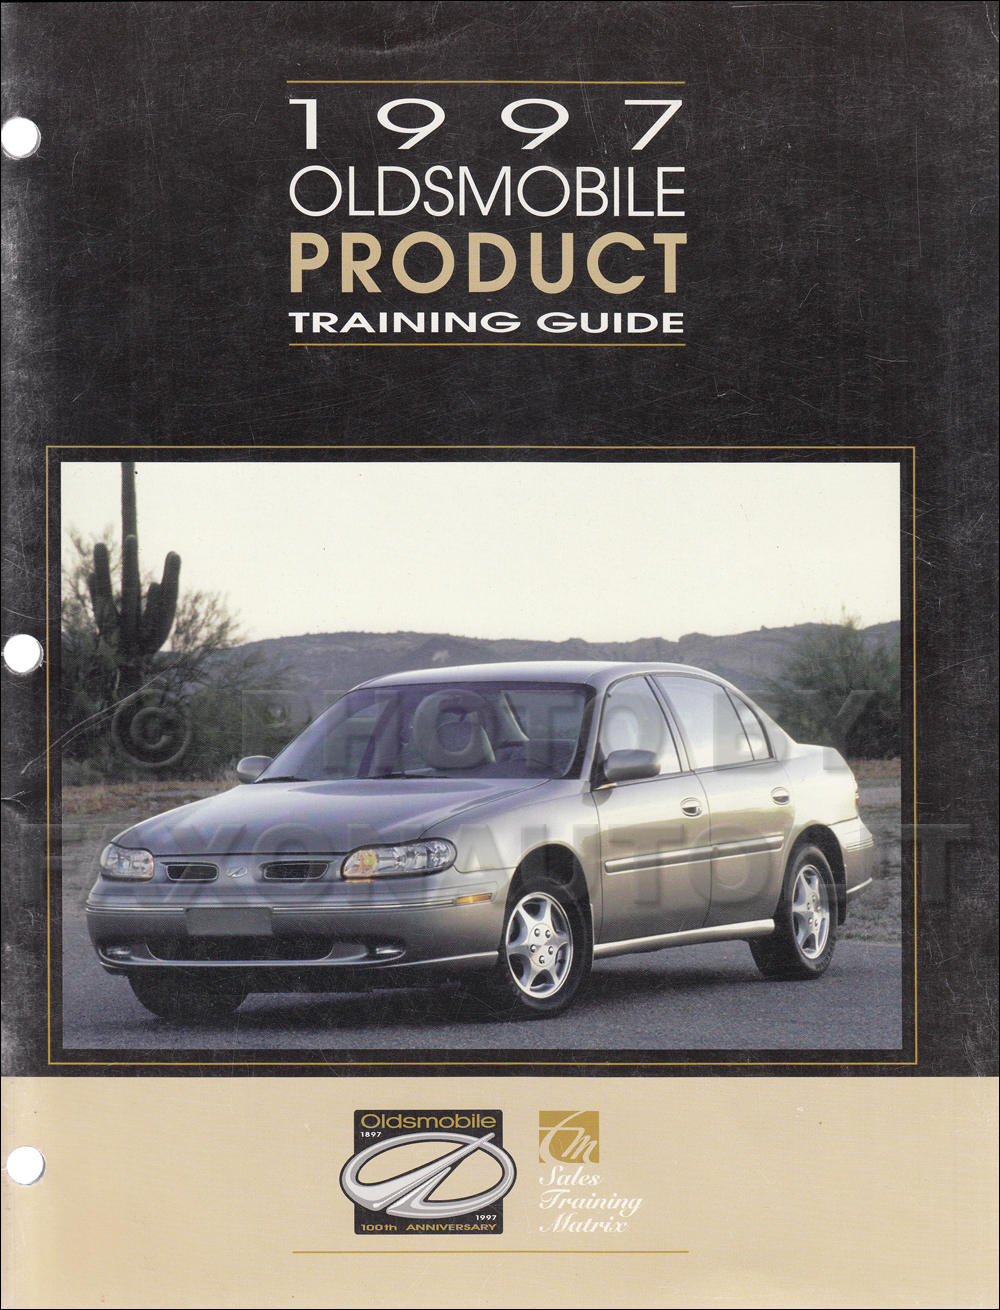 1997 Oldsmobile Sales Training Guide Original